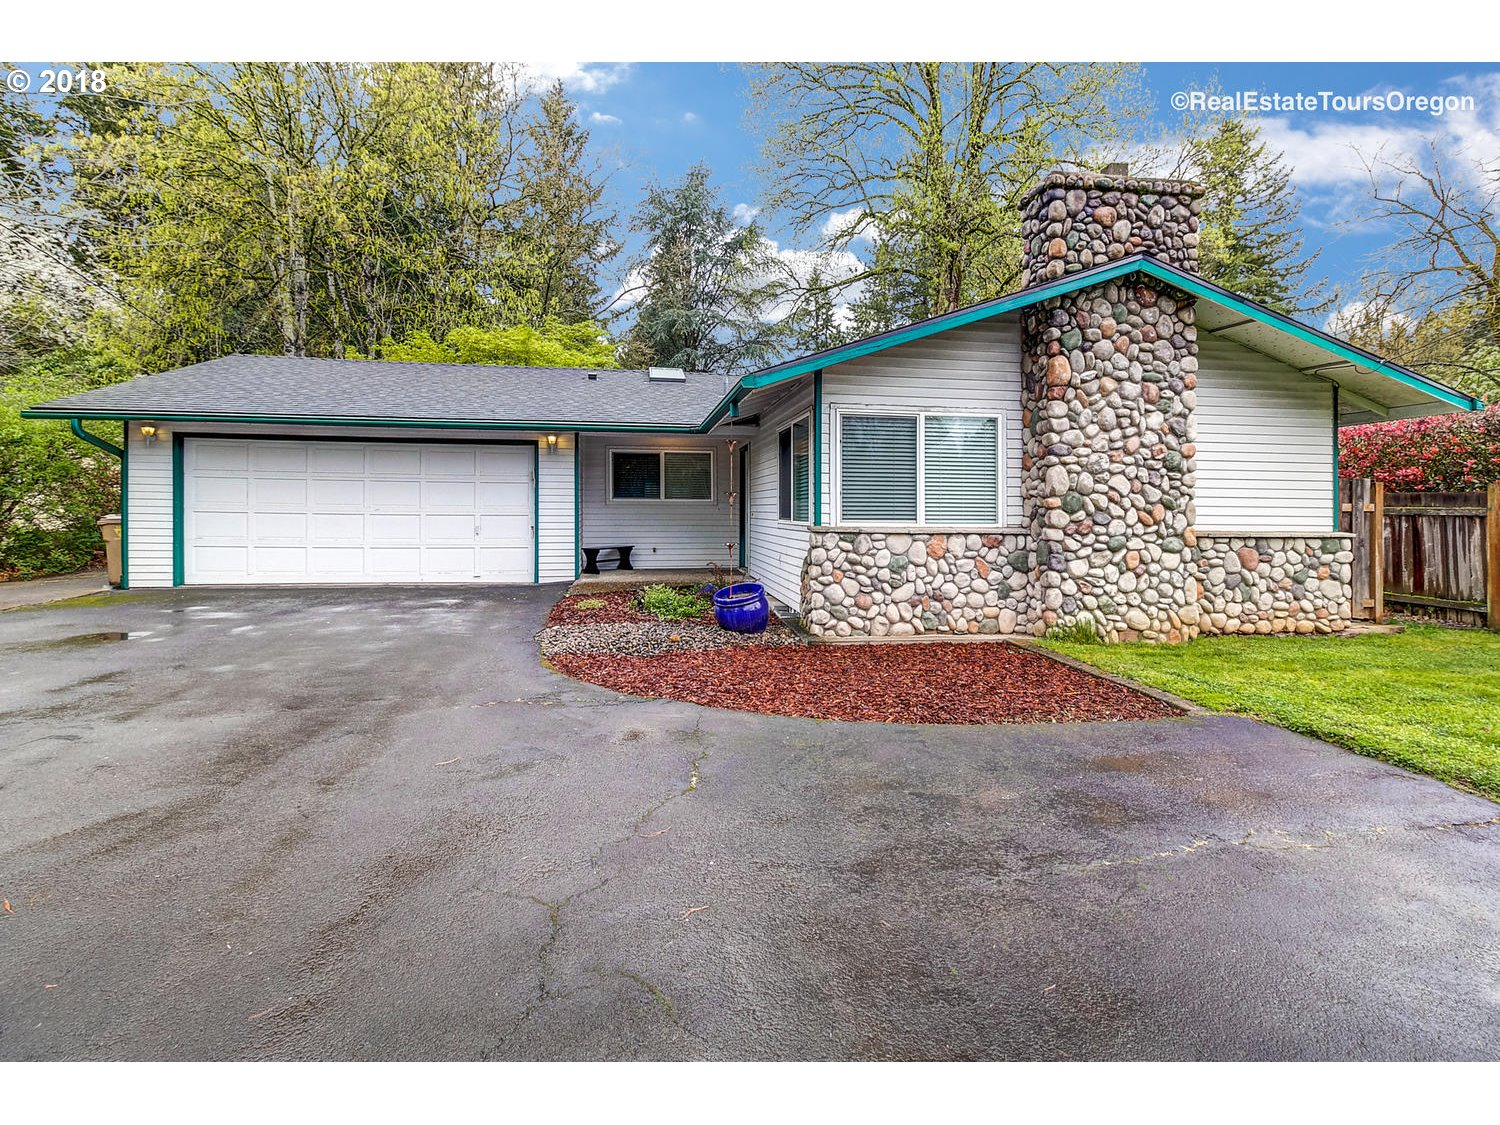 5465 CHILDS RD, Lake Oswego, OR 97035